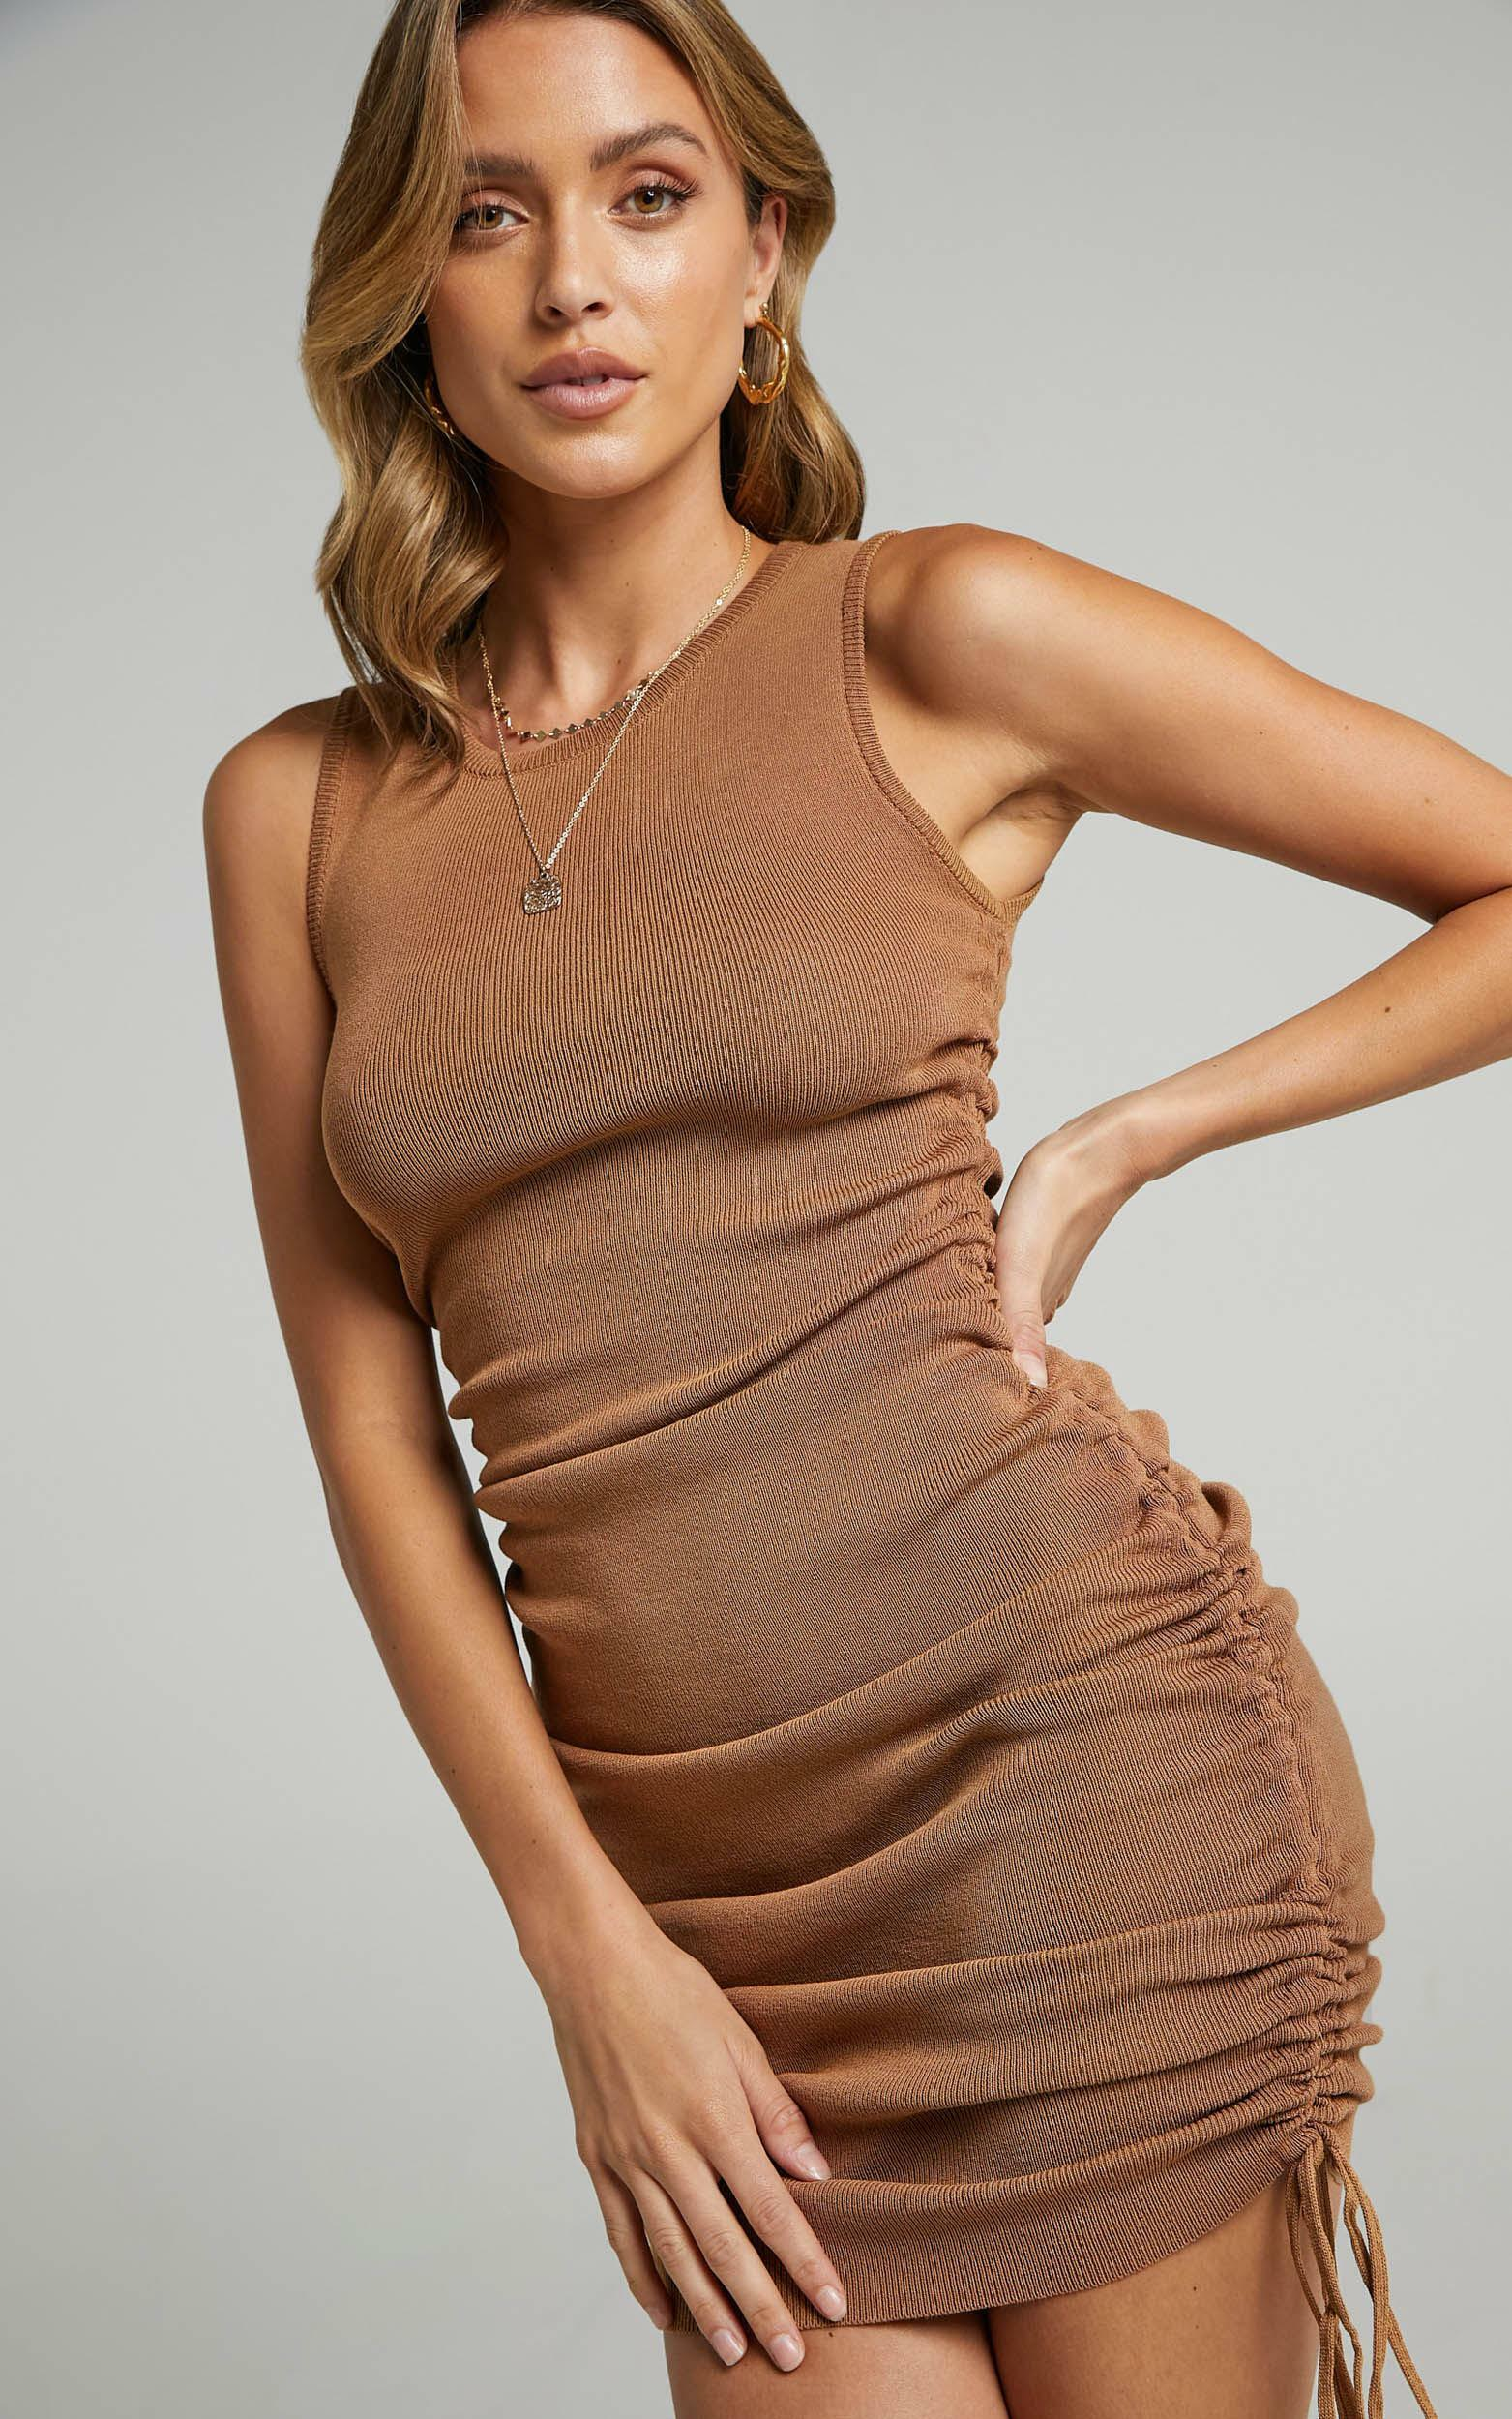 Lioness - Military Minds Dress in Tan - 12, BRN5, hi-res image number null